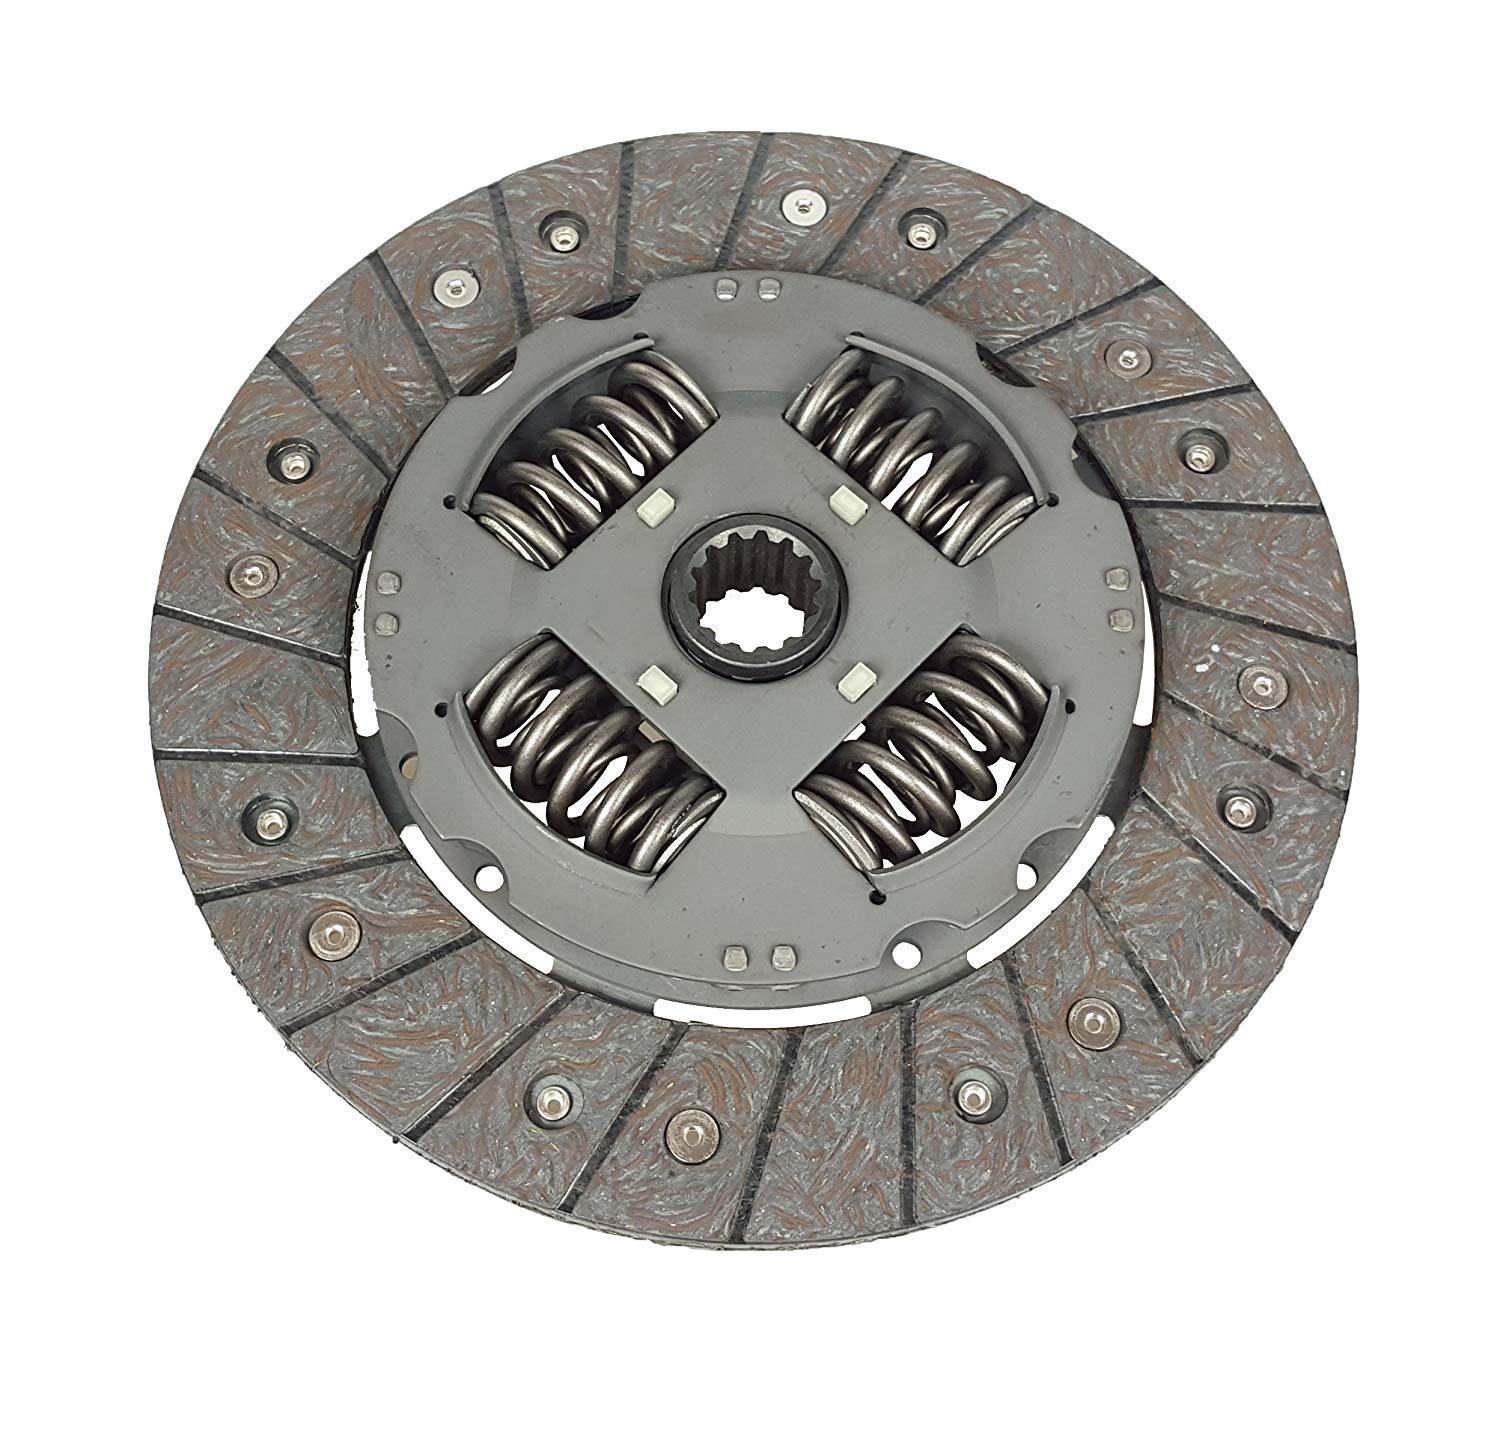 Clutch Kit works with Dodge Dakota Pickup Truck Base Slt Sport Ws Standard Extended Cab Pickup 1995-1998 2.5L l4 GAS OHV Naturally Aspirated Fits from Sep 22, 1995